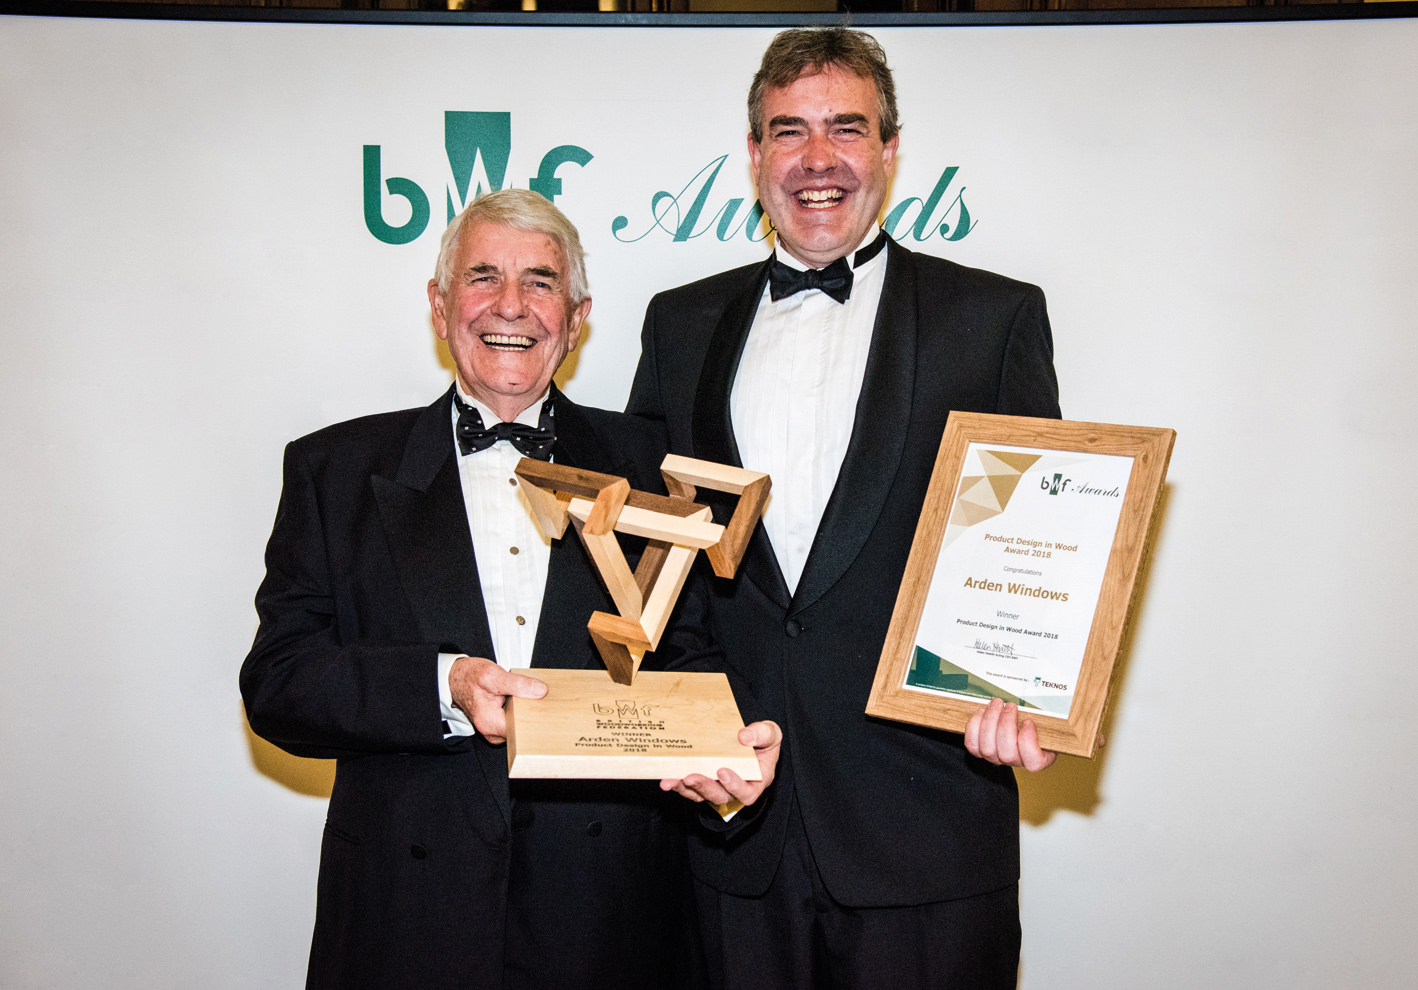 Enter the BWF Product Design in Wood Award